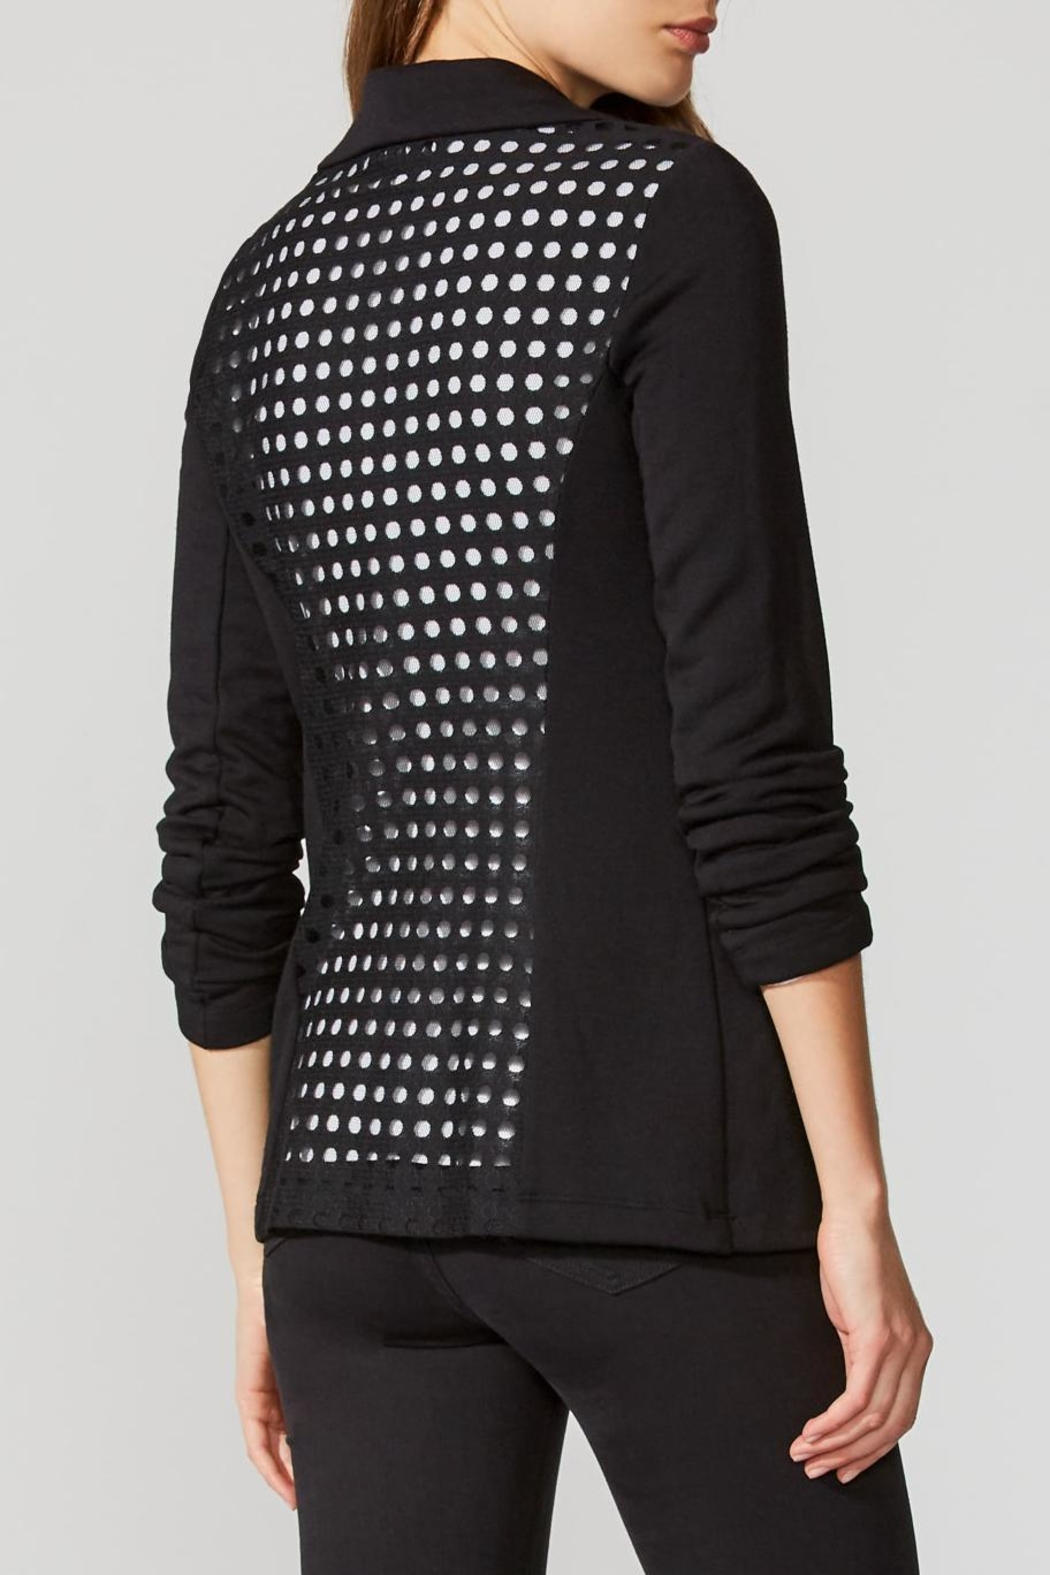 Bailey 44 Perforated Back Jacket - Side Cropped Image